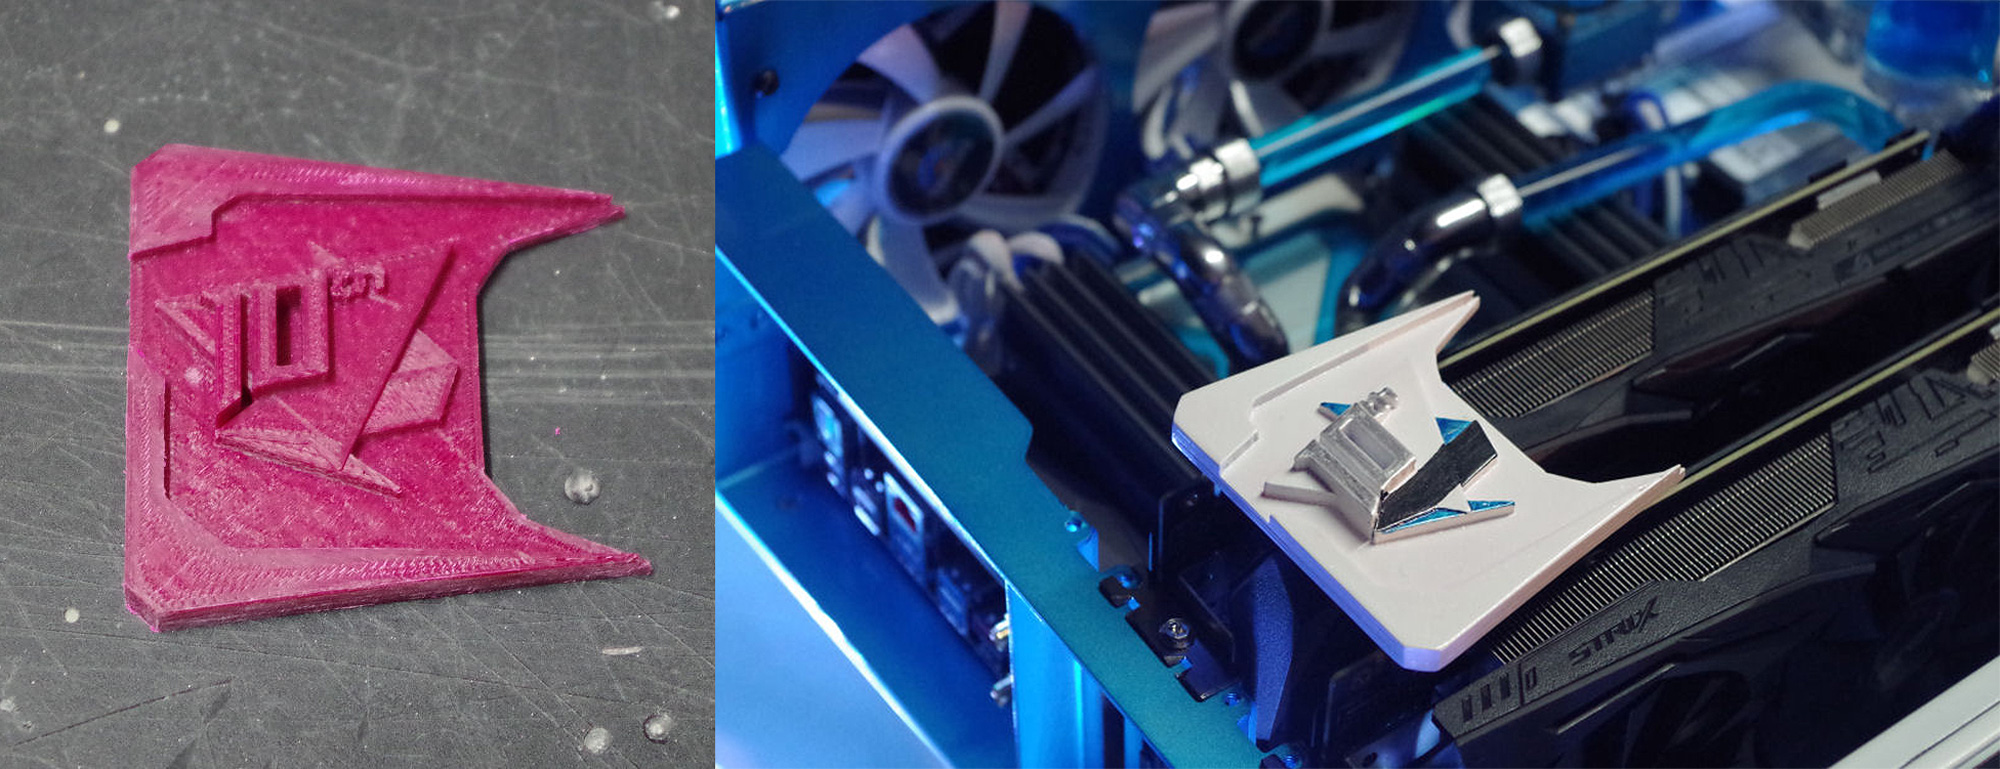 Before-and-after-SLI-Bridge